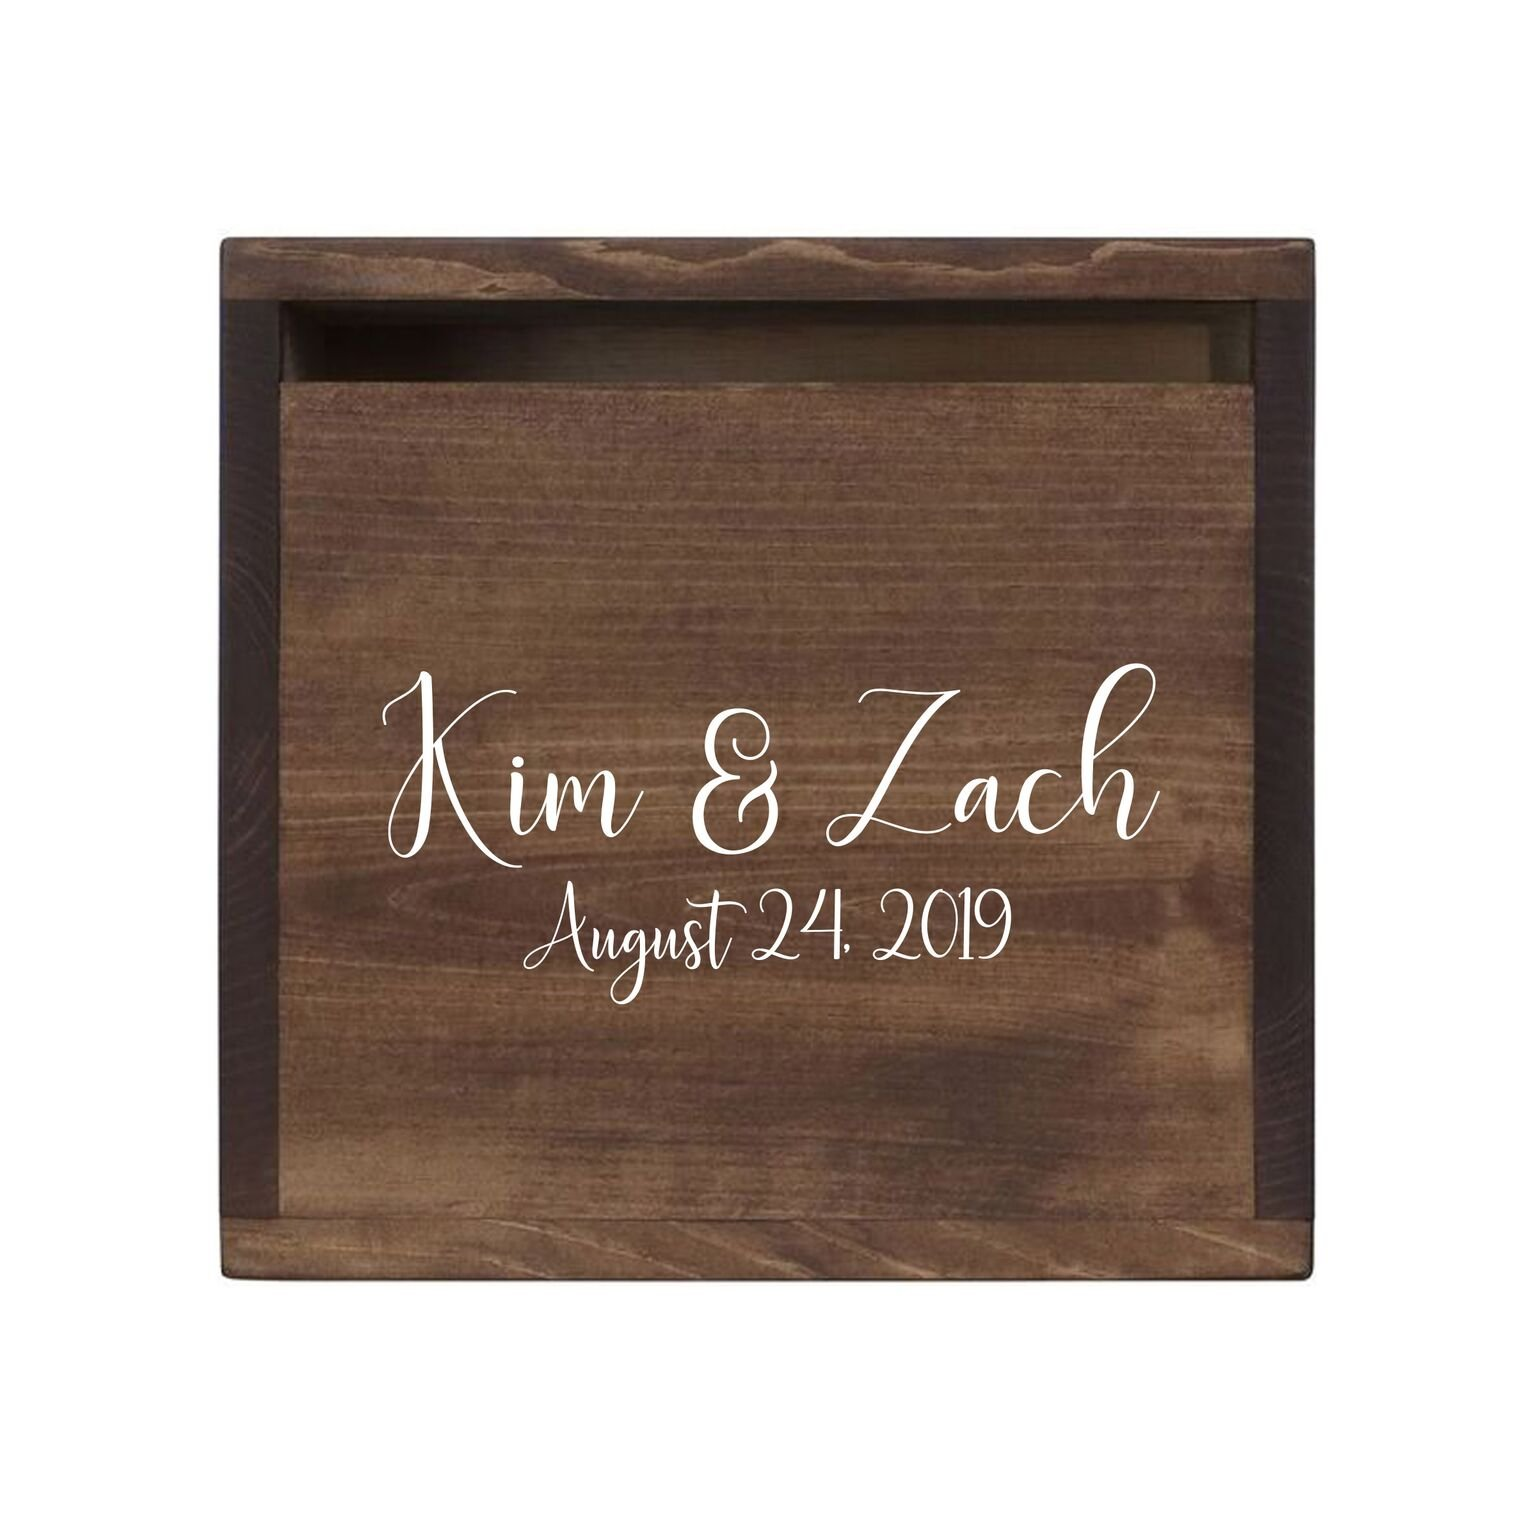 "LifeSong Milestones Personalized First Names Rustic Wooden Wedding Card Box Custom Card Holder with Front Slot for NewlyWeds Couples Reception 13.5"" L x 12"" W x 12.5"" T (Walnut) by LifeSong Milestones"